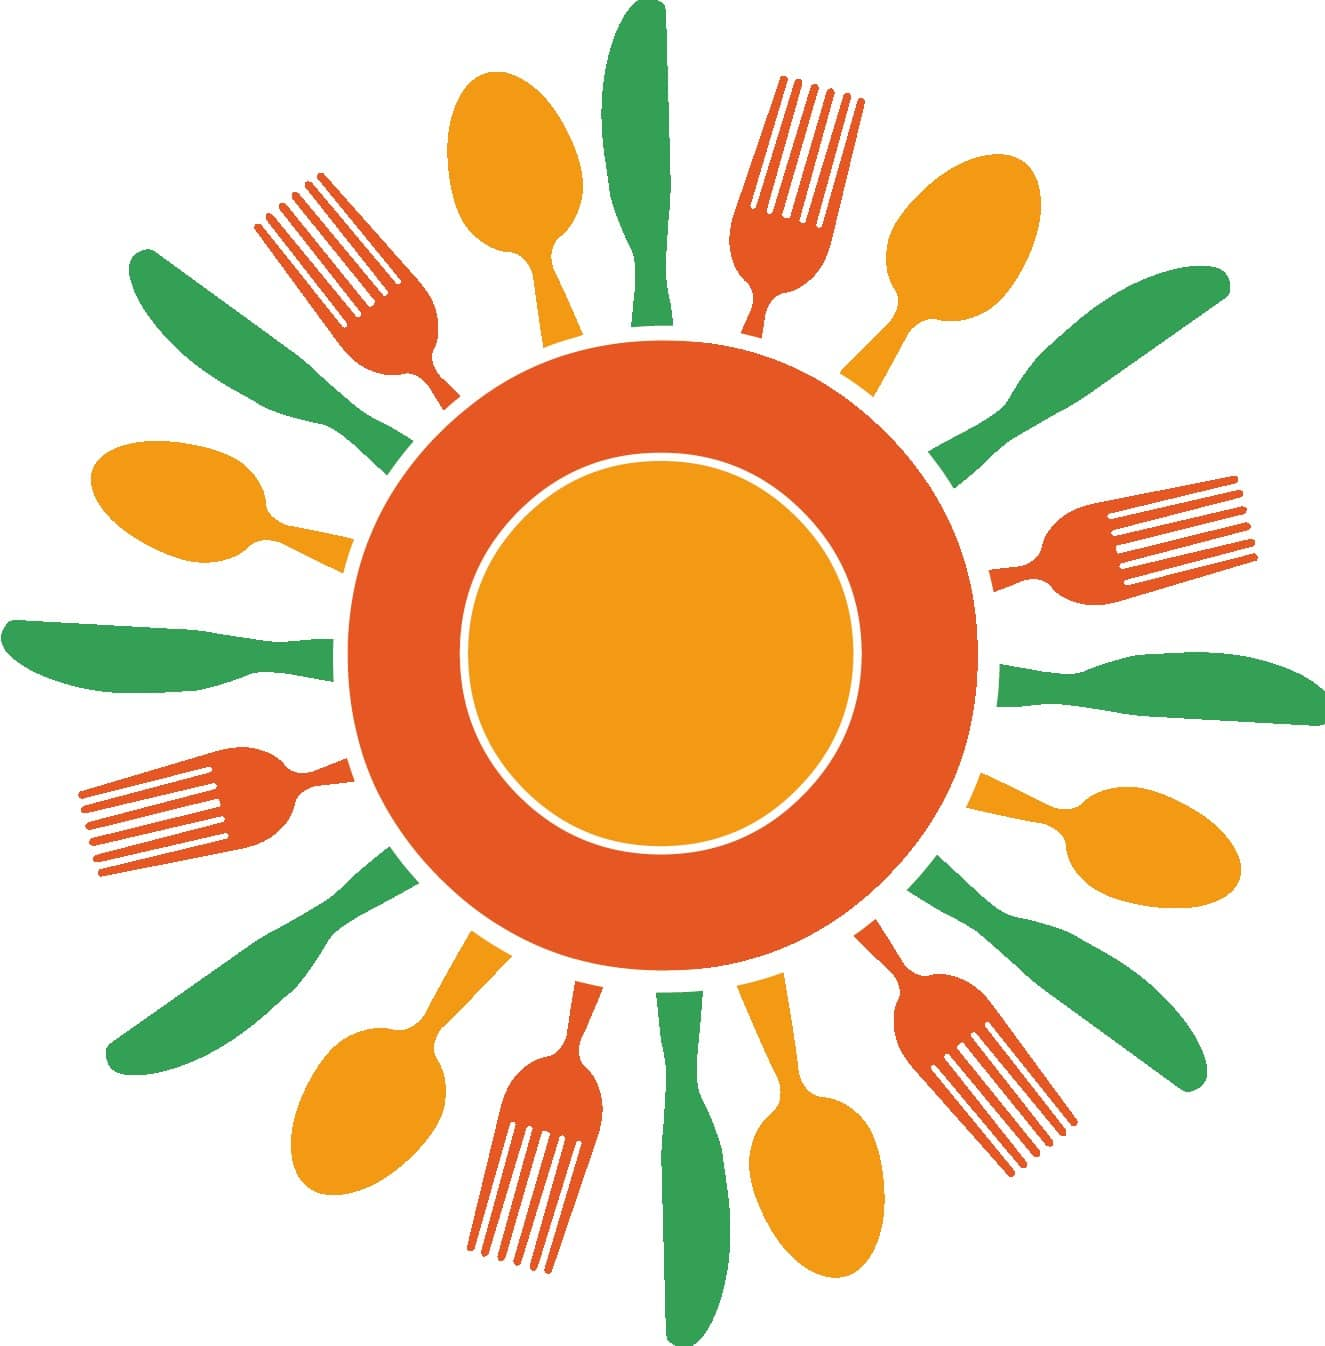 THE SUN ON YOUR PLATE